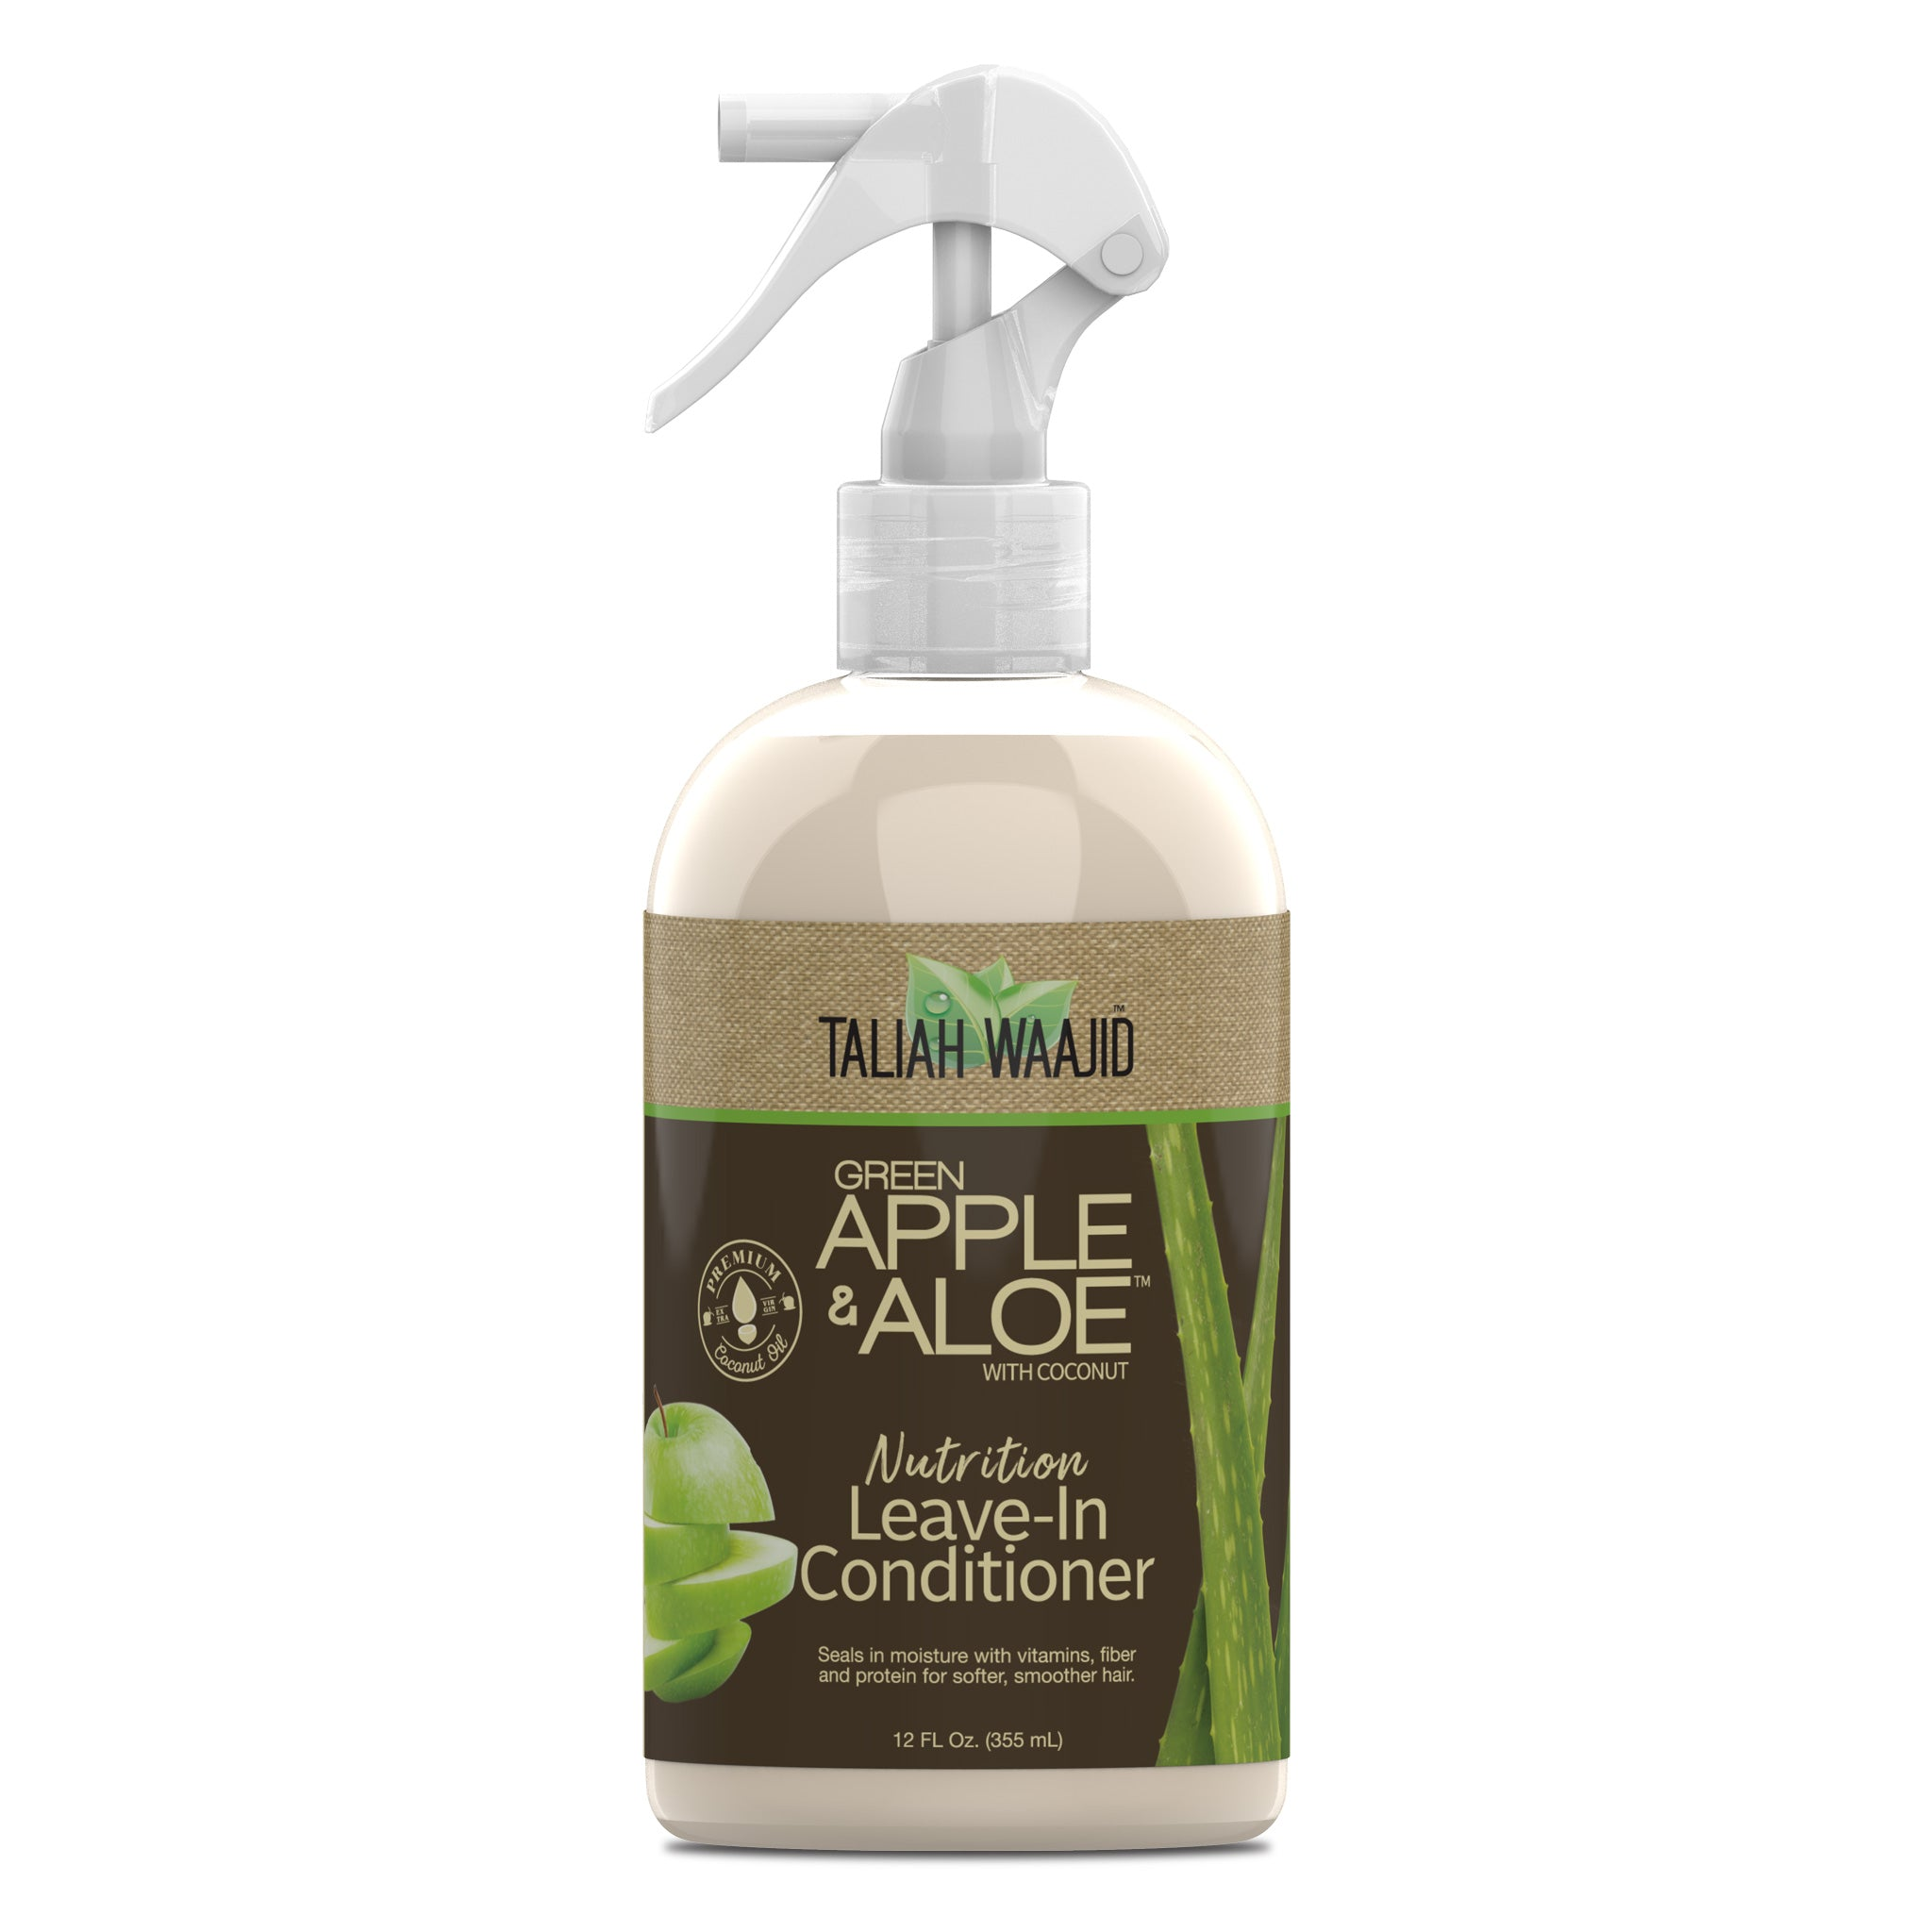 Green Apple & Aloe Nutrition Leave-In Conditioner 12oz